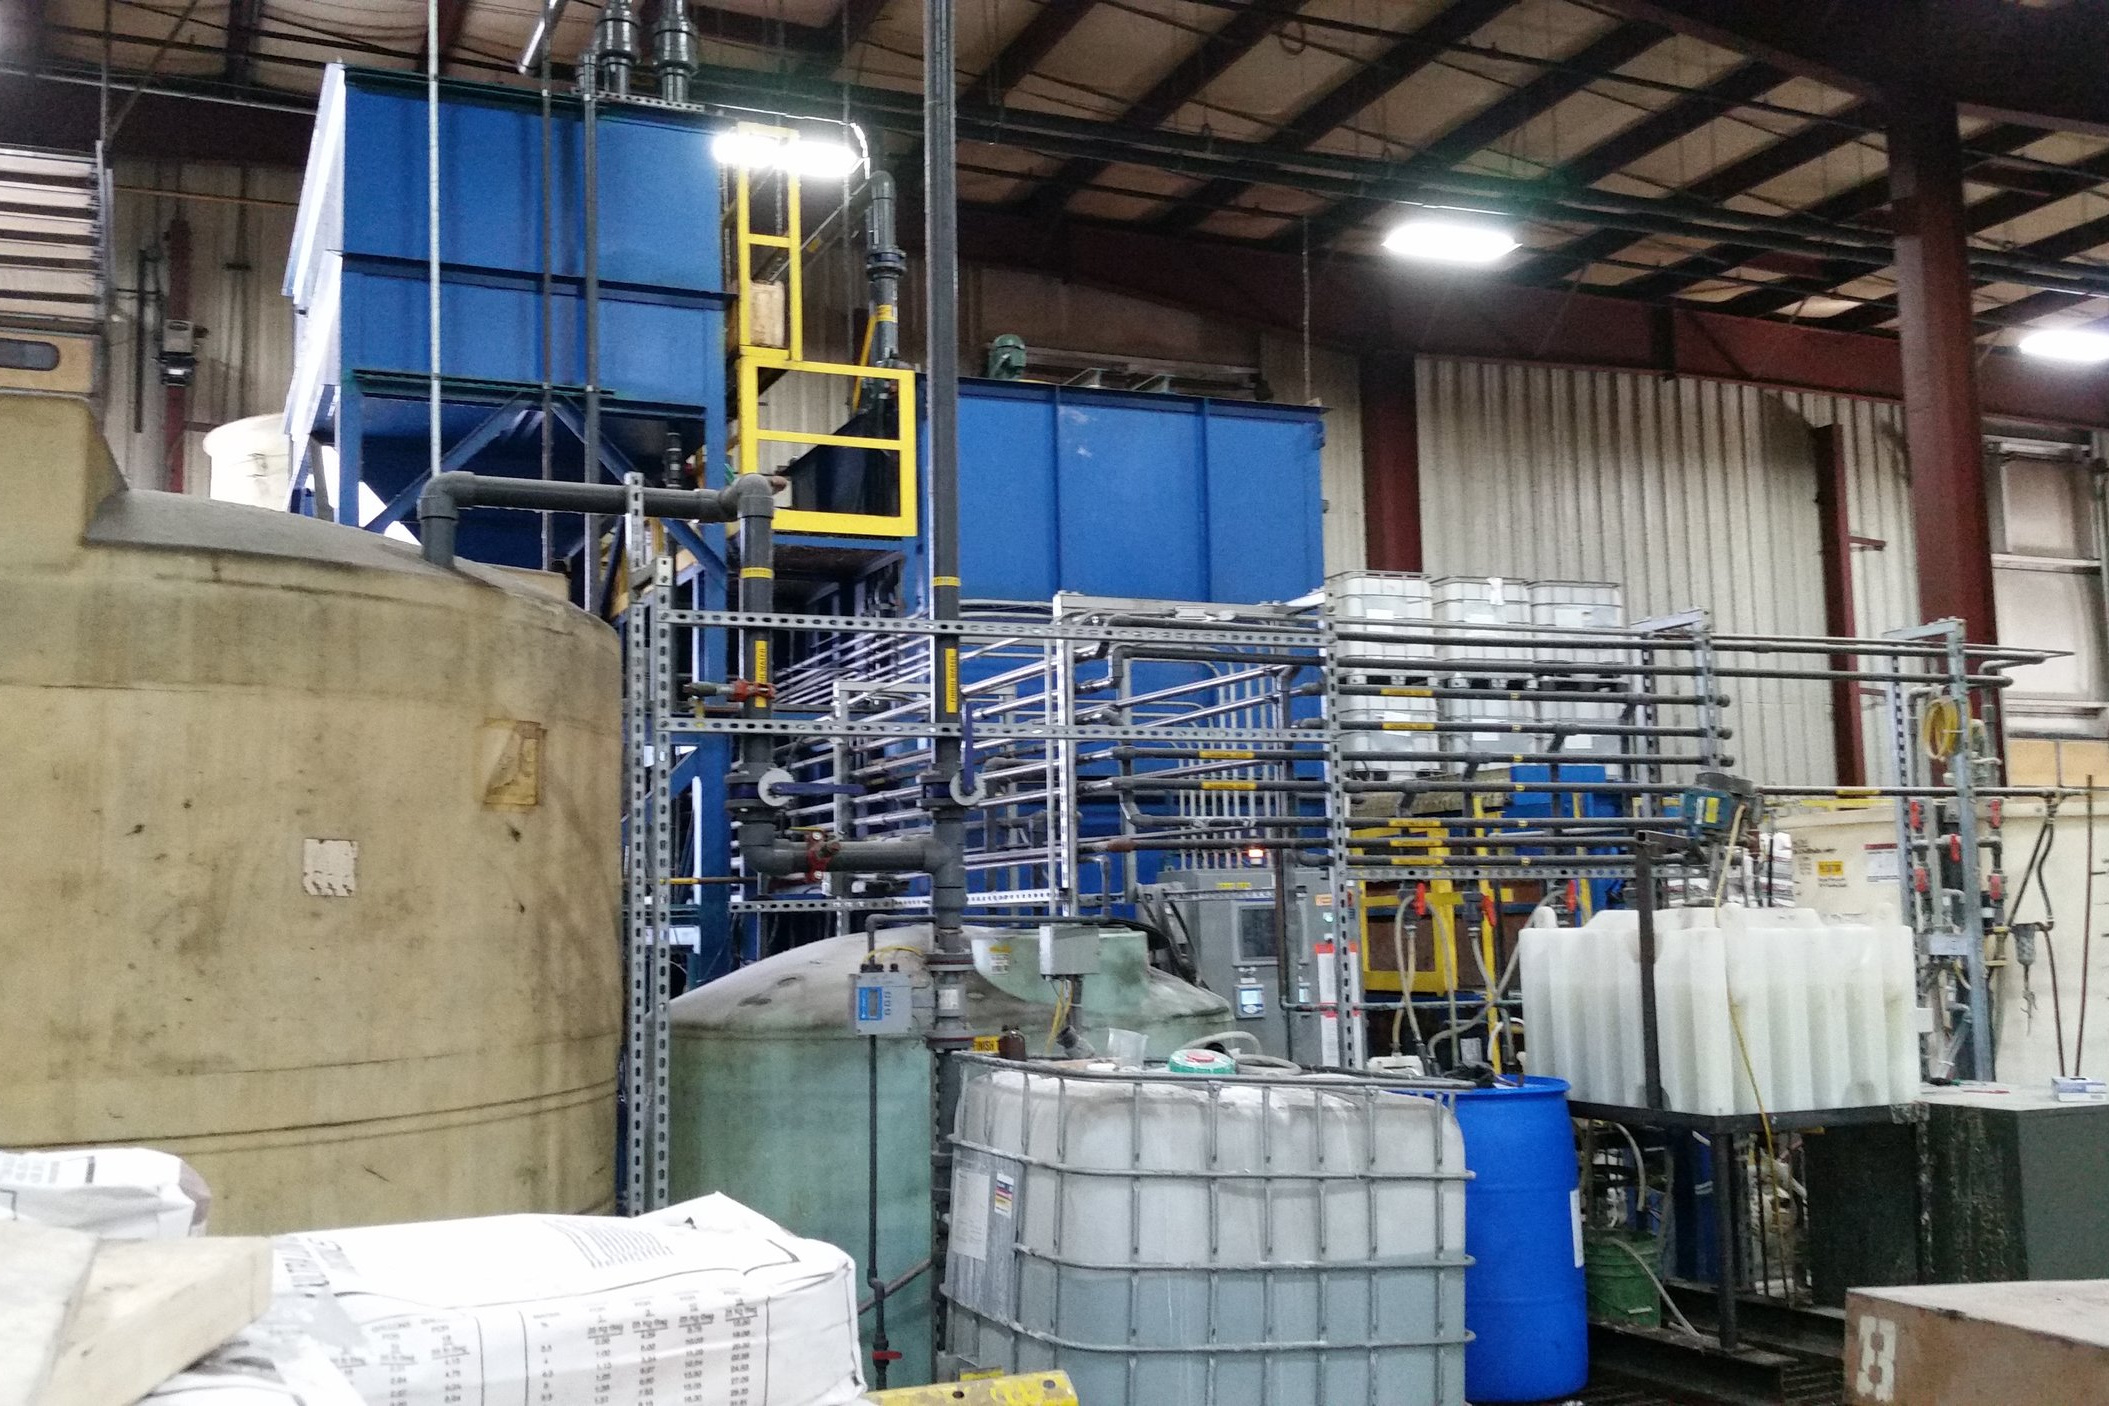 %28Waste+water+products%29+waste+water+system+4.jpg